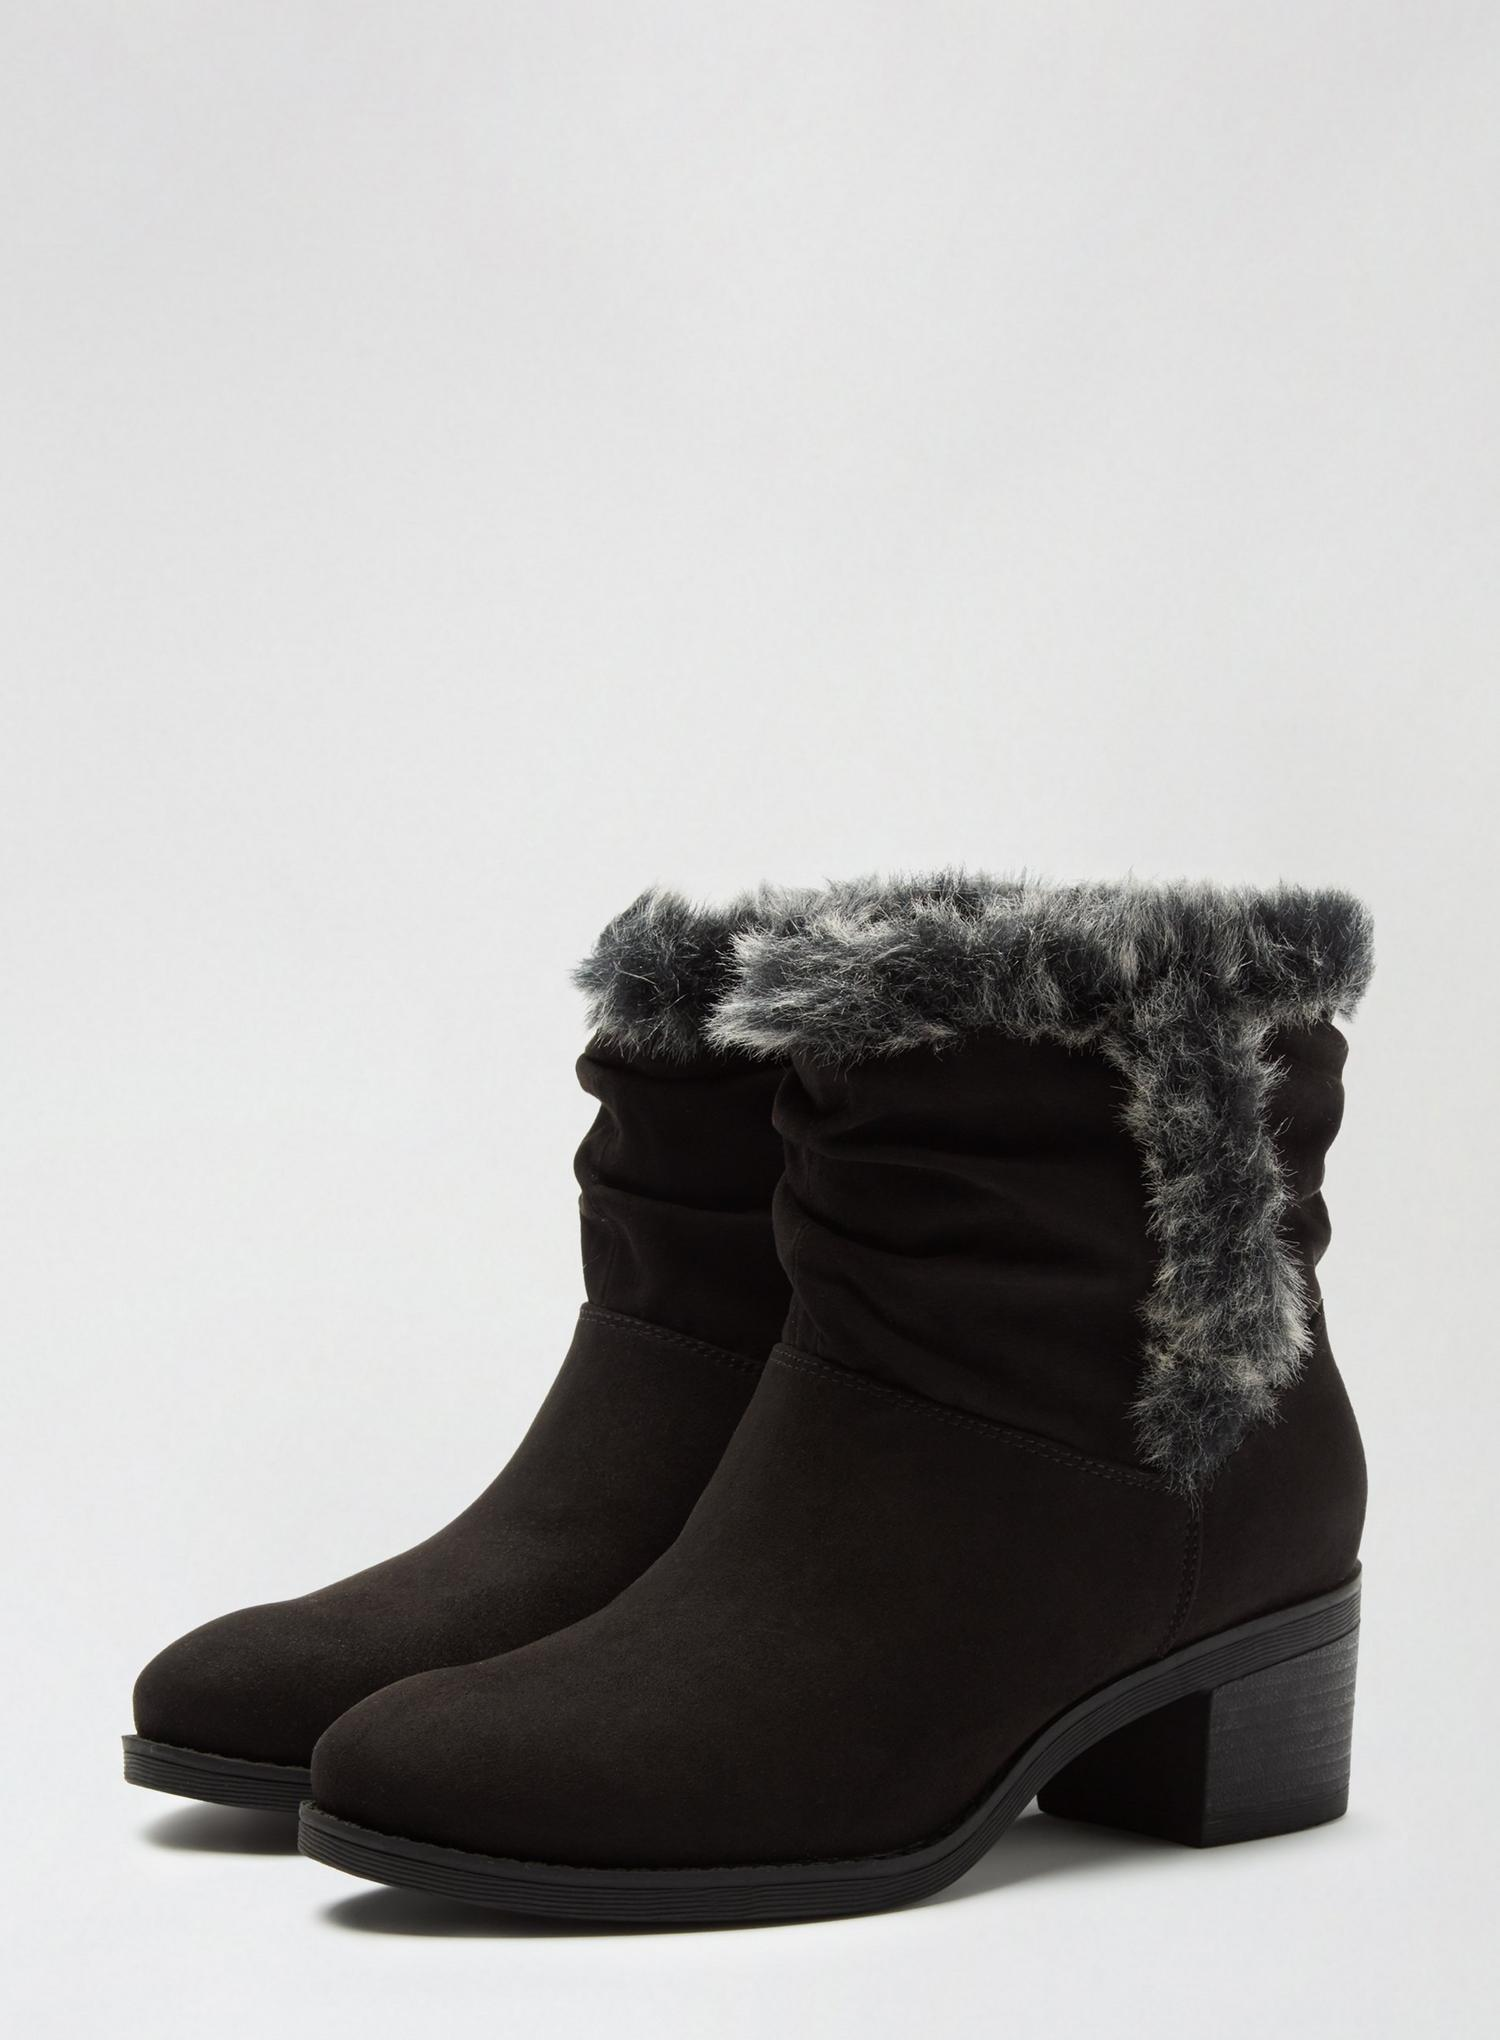 105 Black Madrid Rouched Boots image number 1